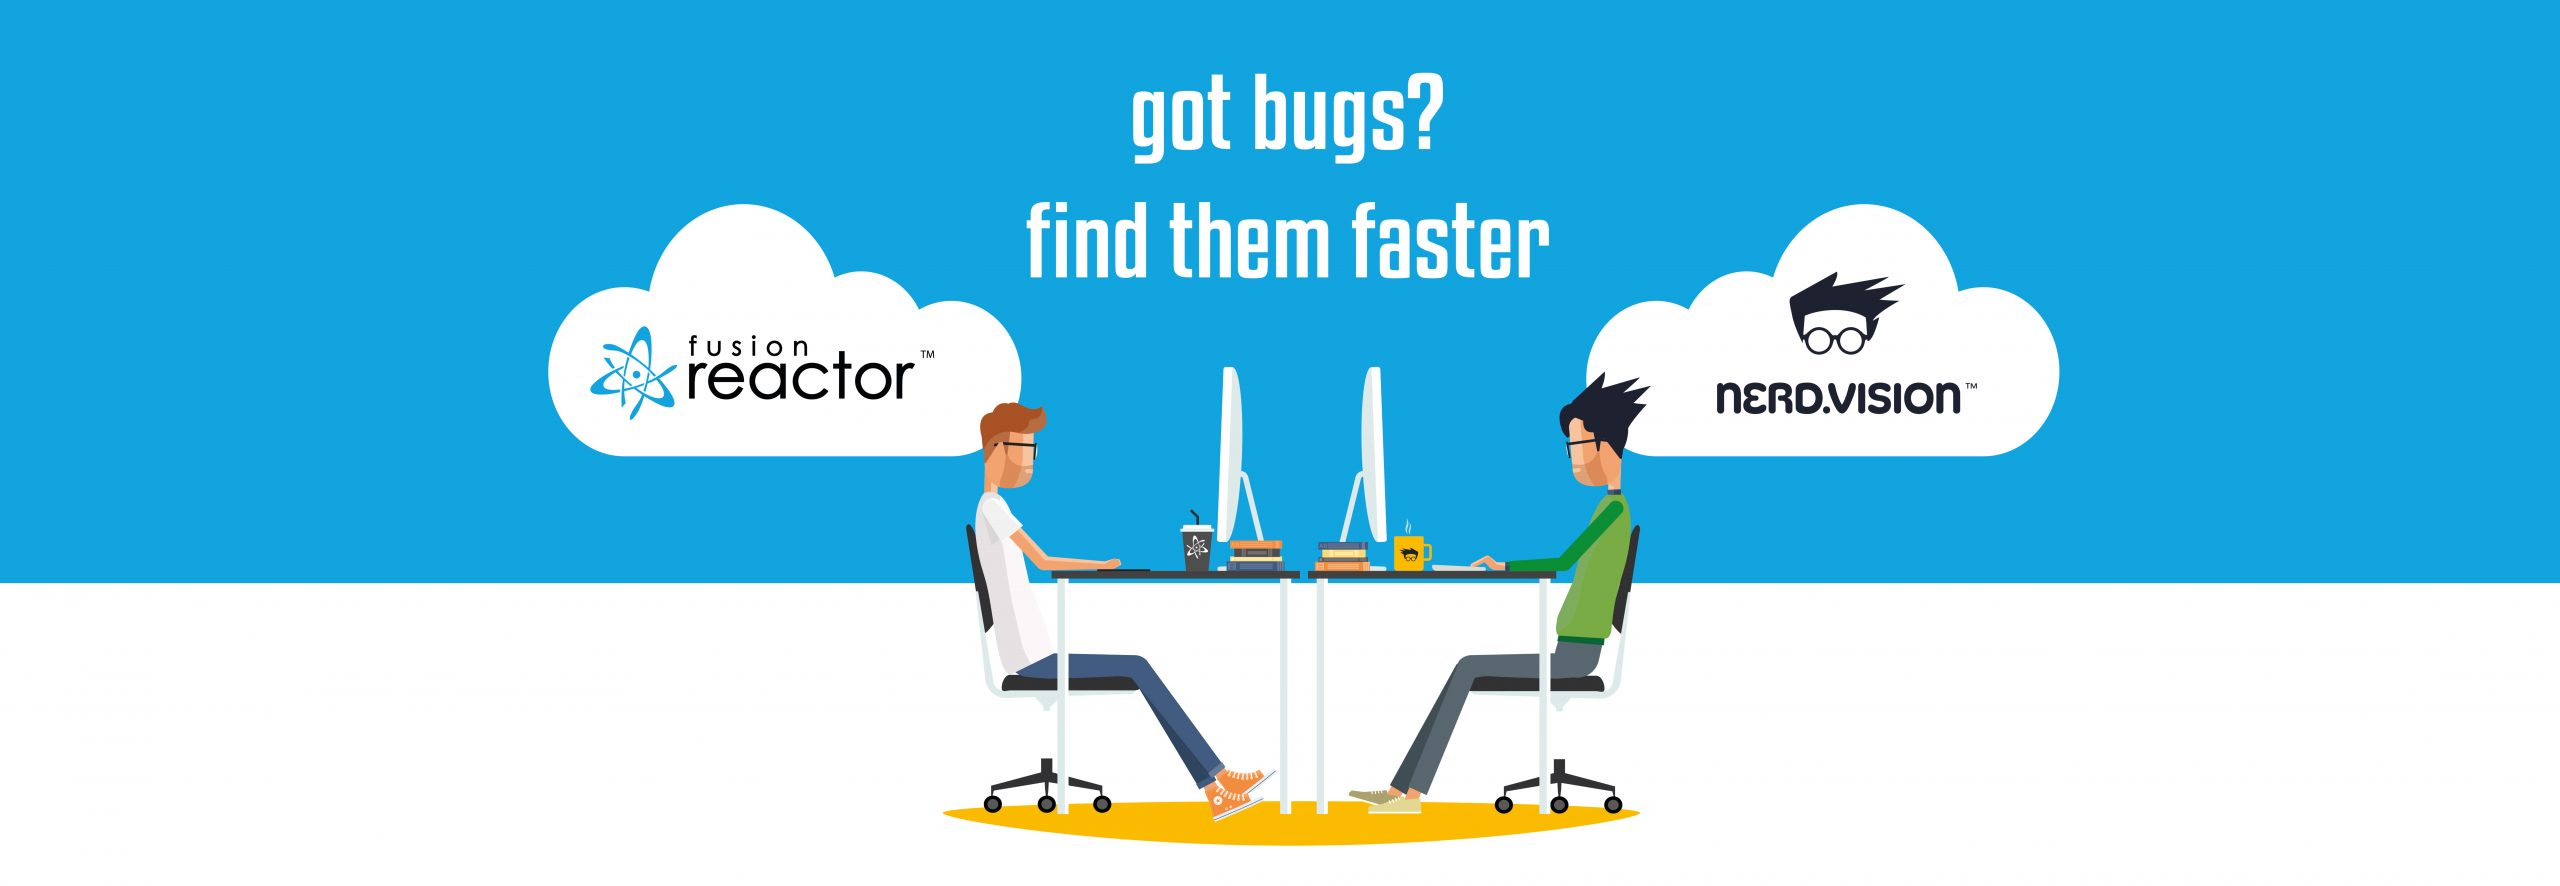 Find bugs fast